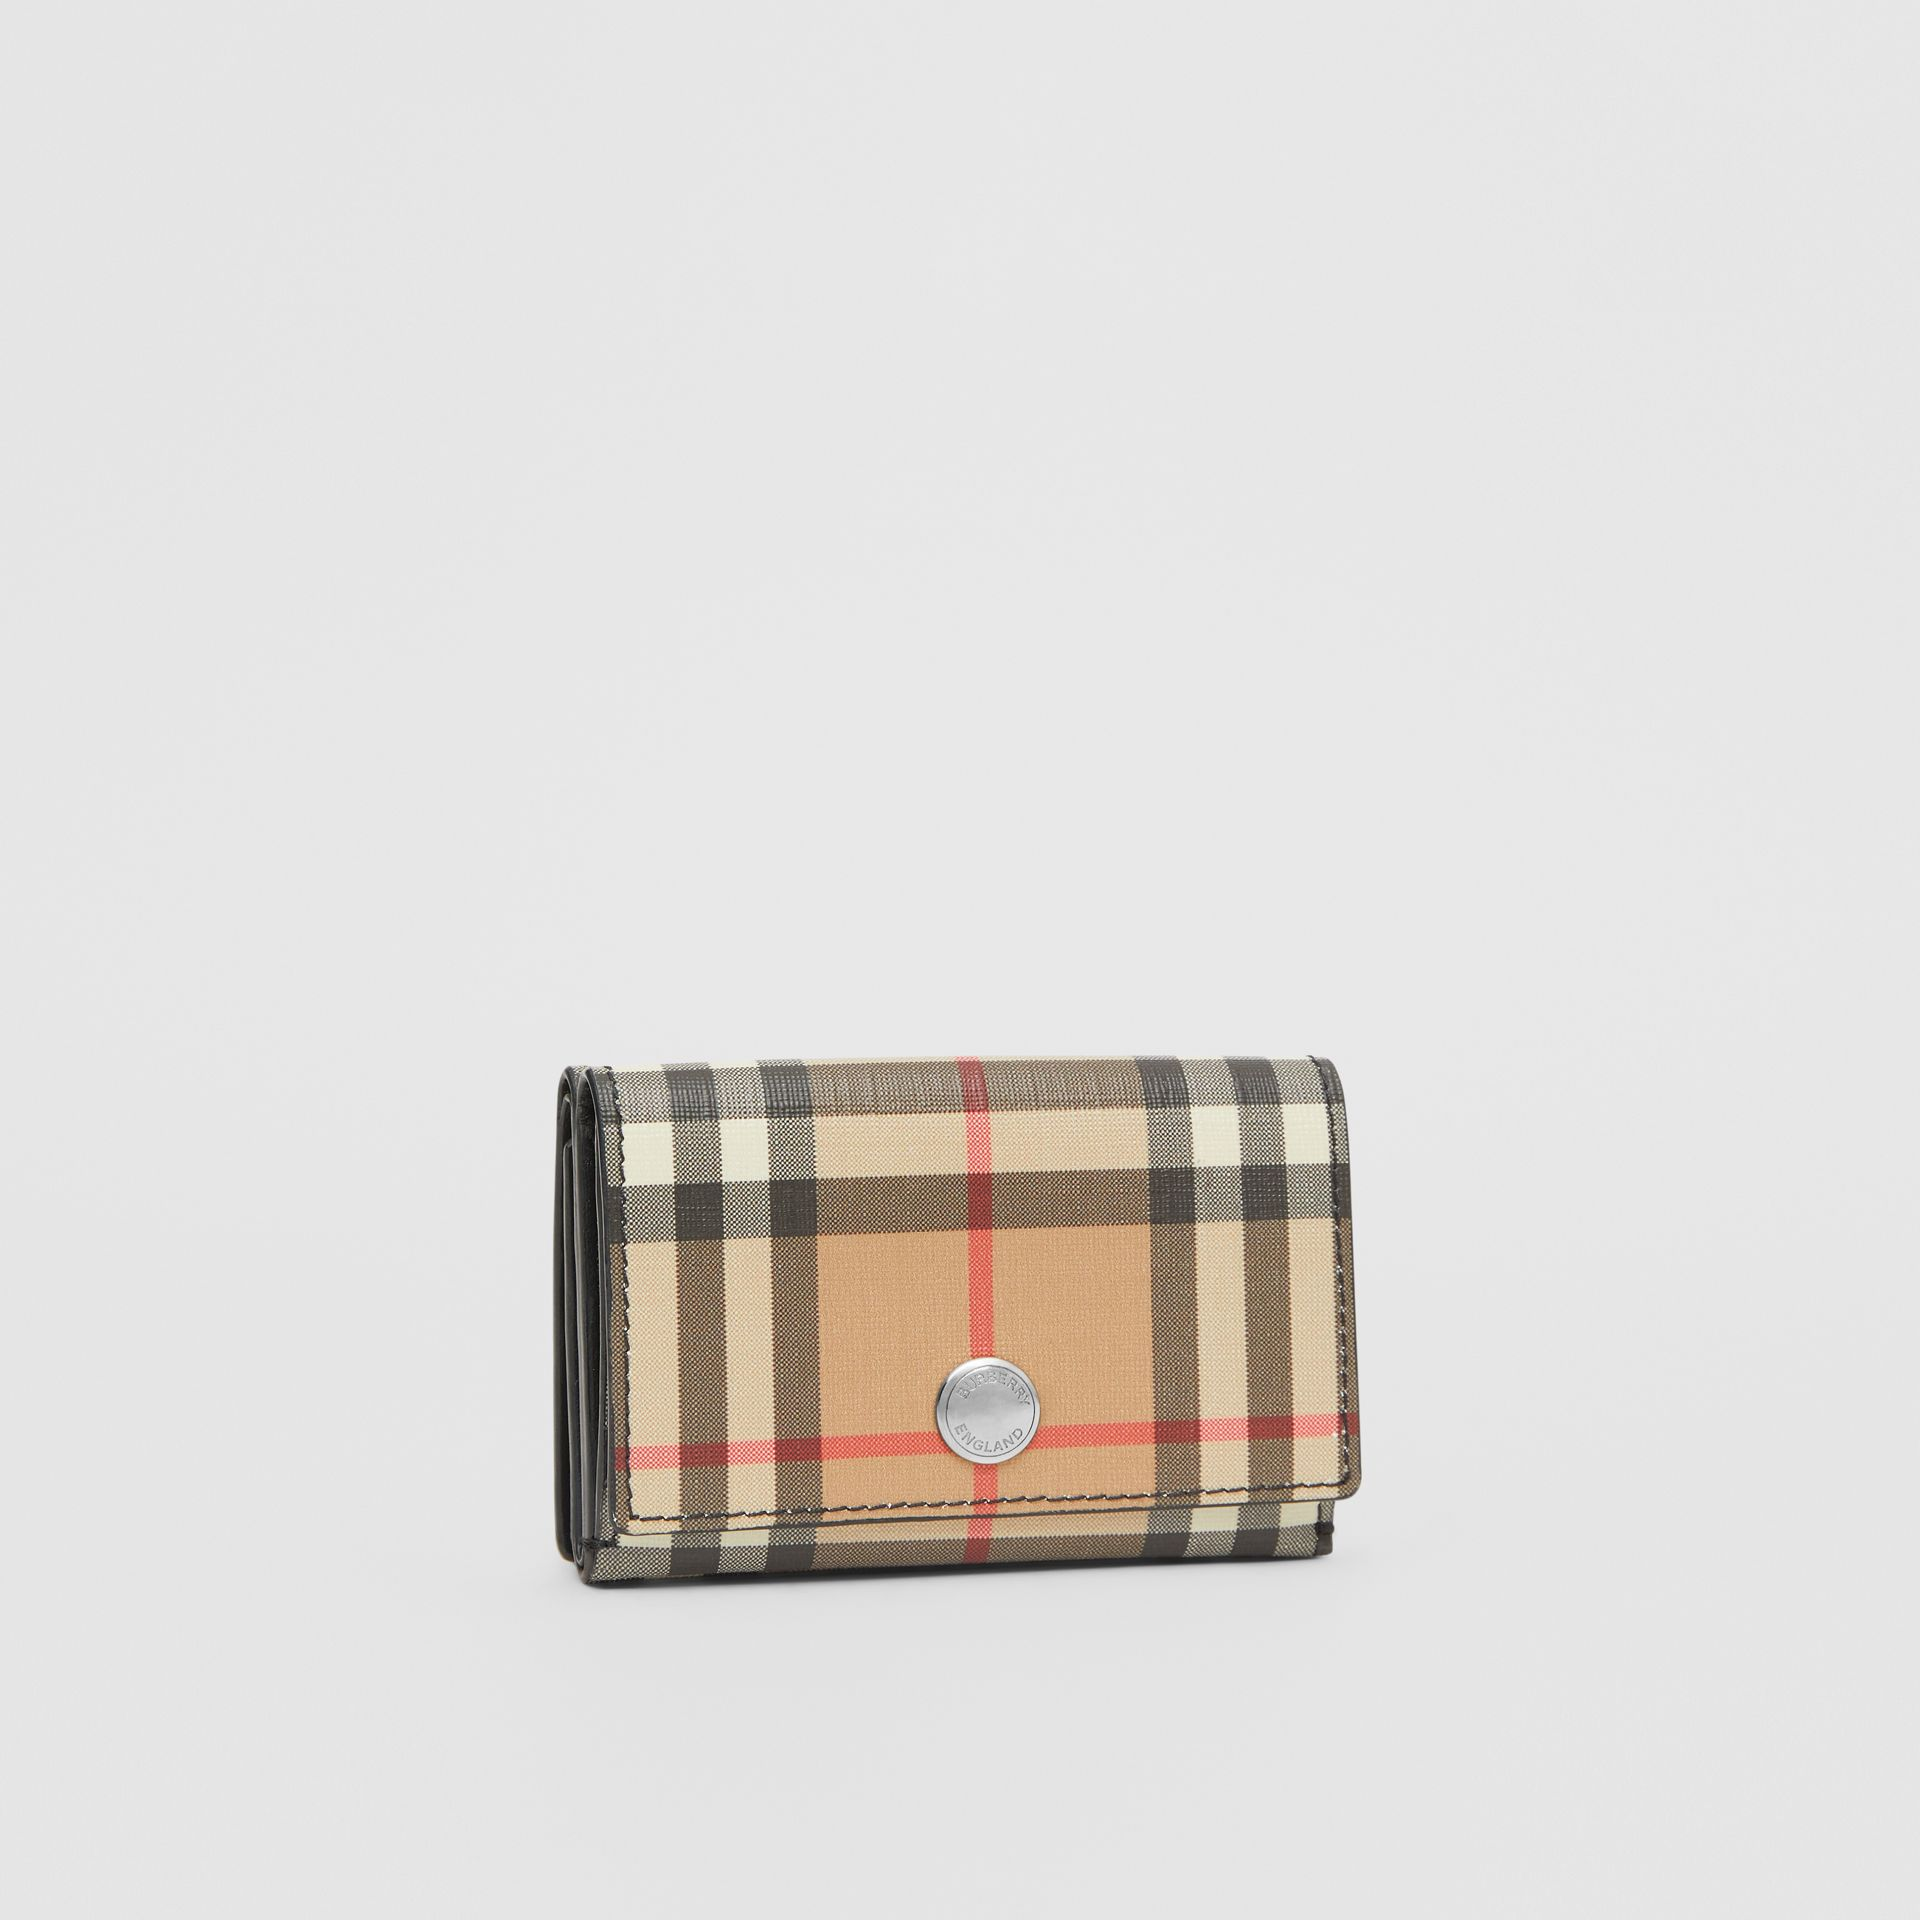 Small Vintage Check E-canvas Folding Wallet in Black - Women | Burberry Hong Kong - gallery image 3